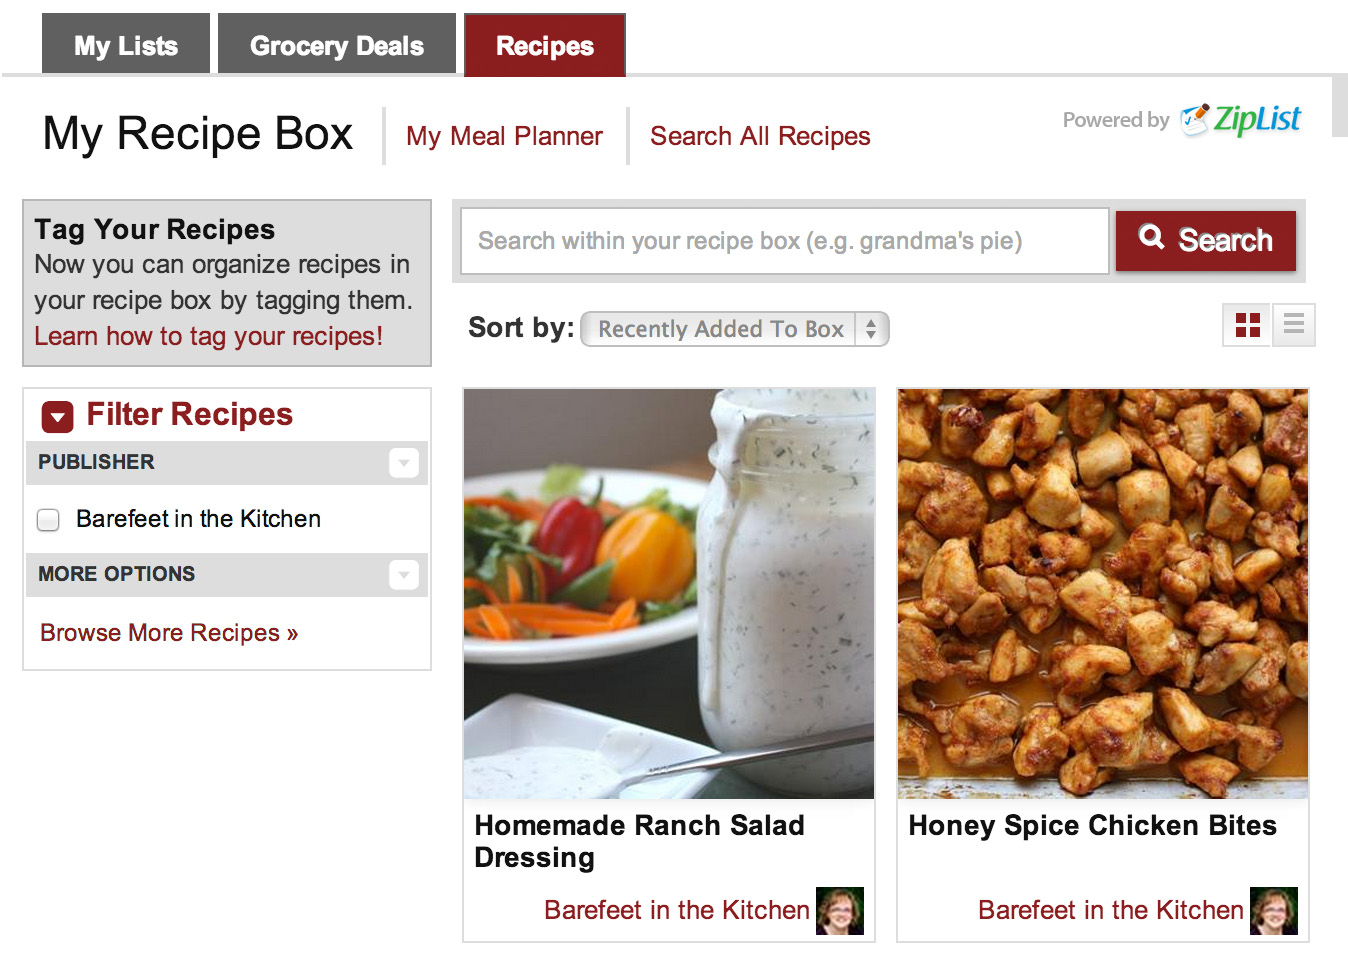 How To Save Recipes On Barefeet In The Kitchen Using Ziplist